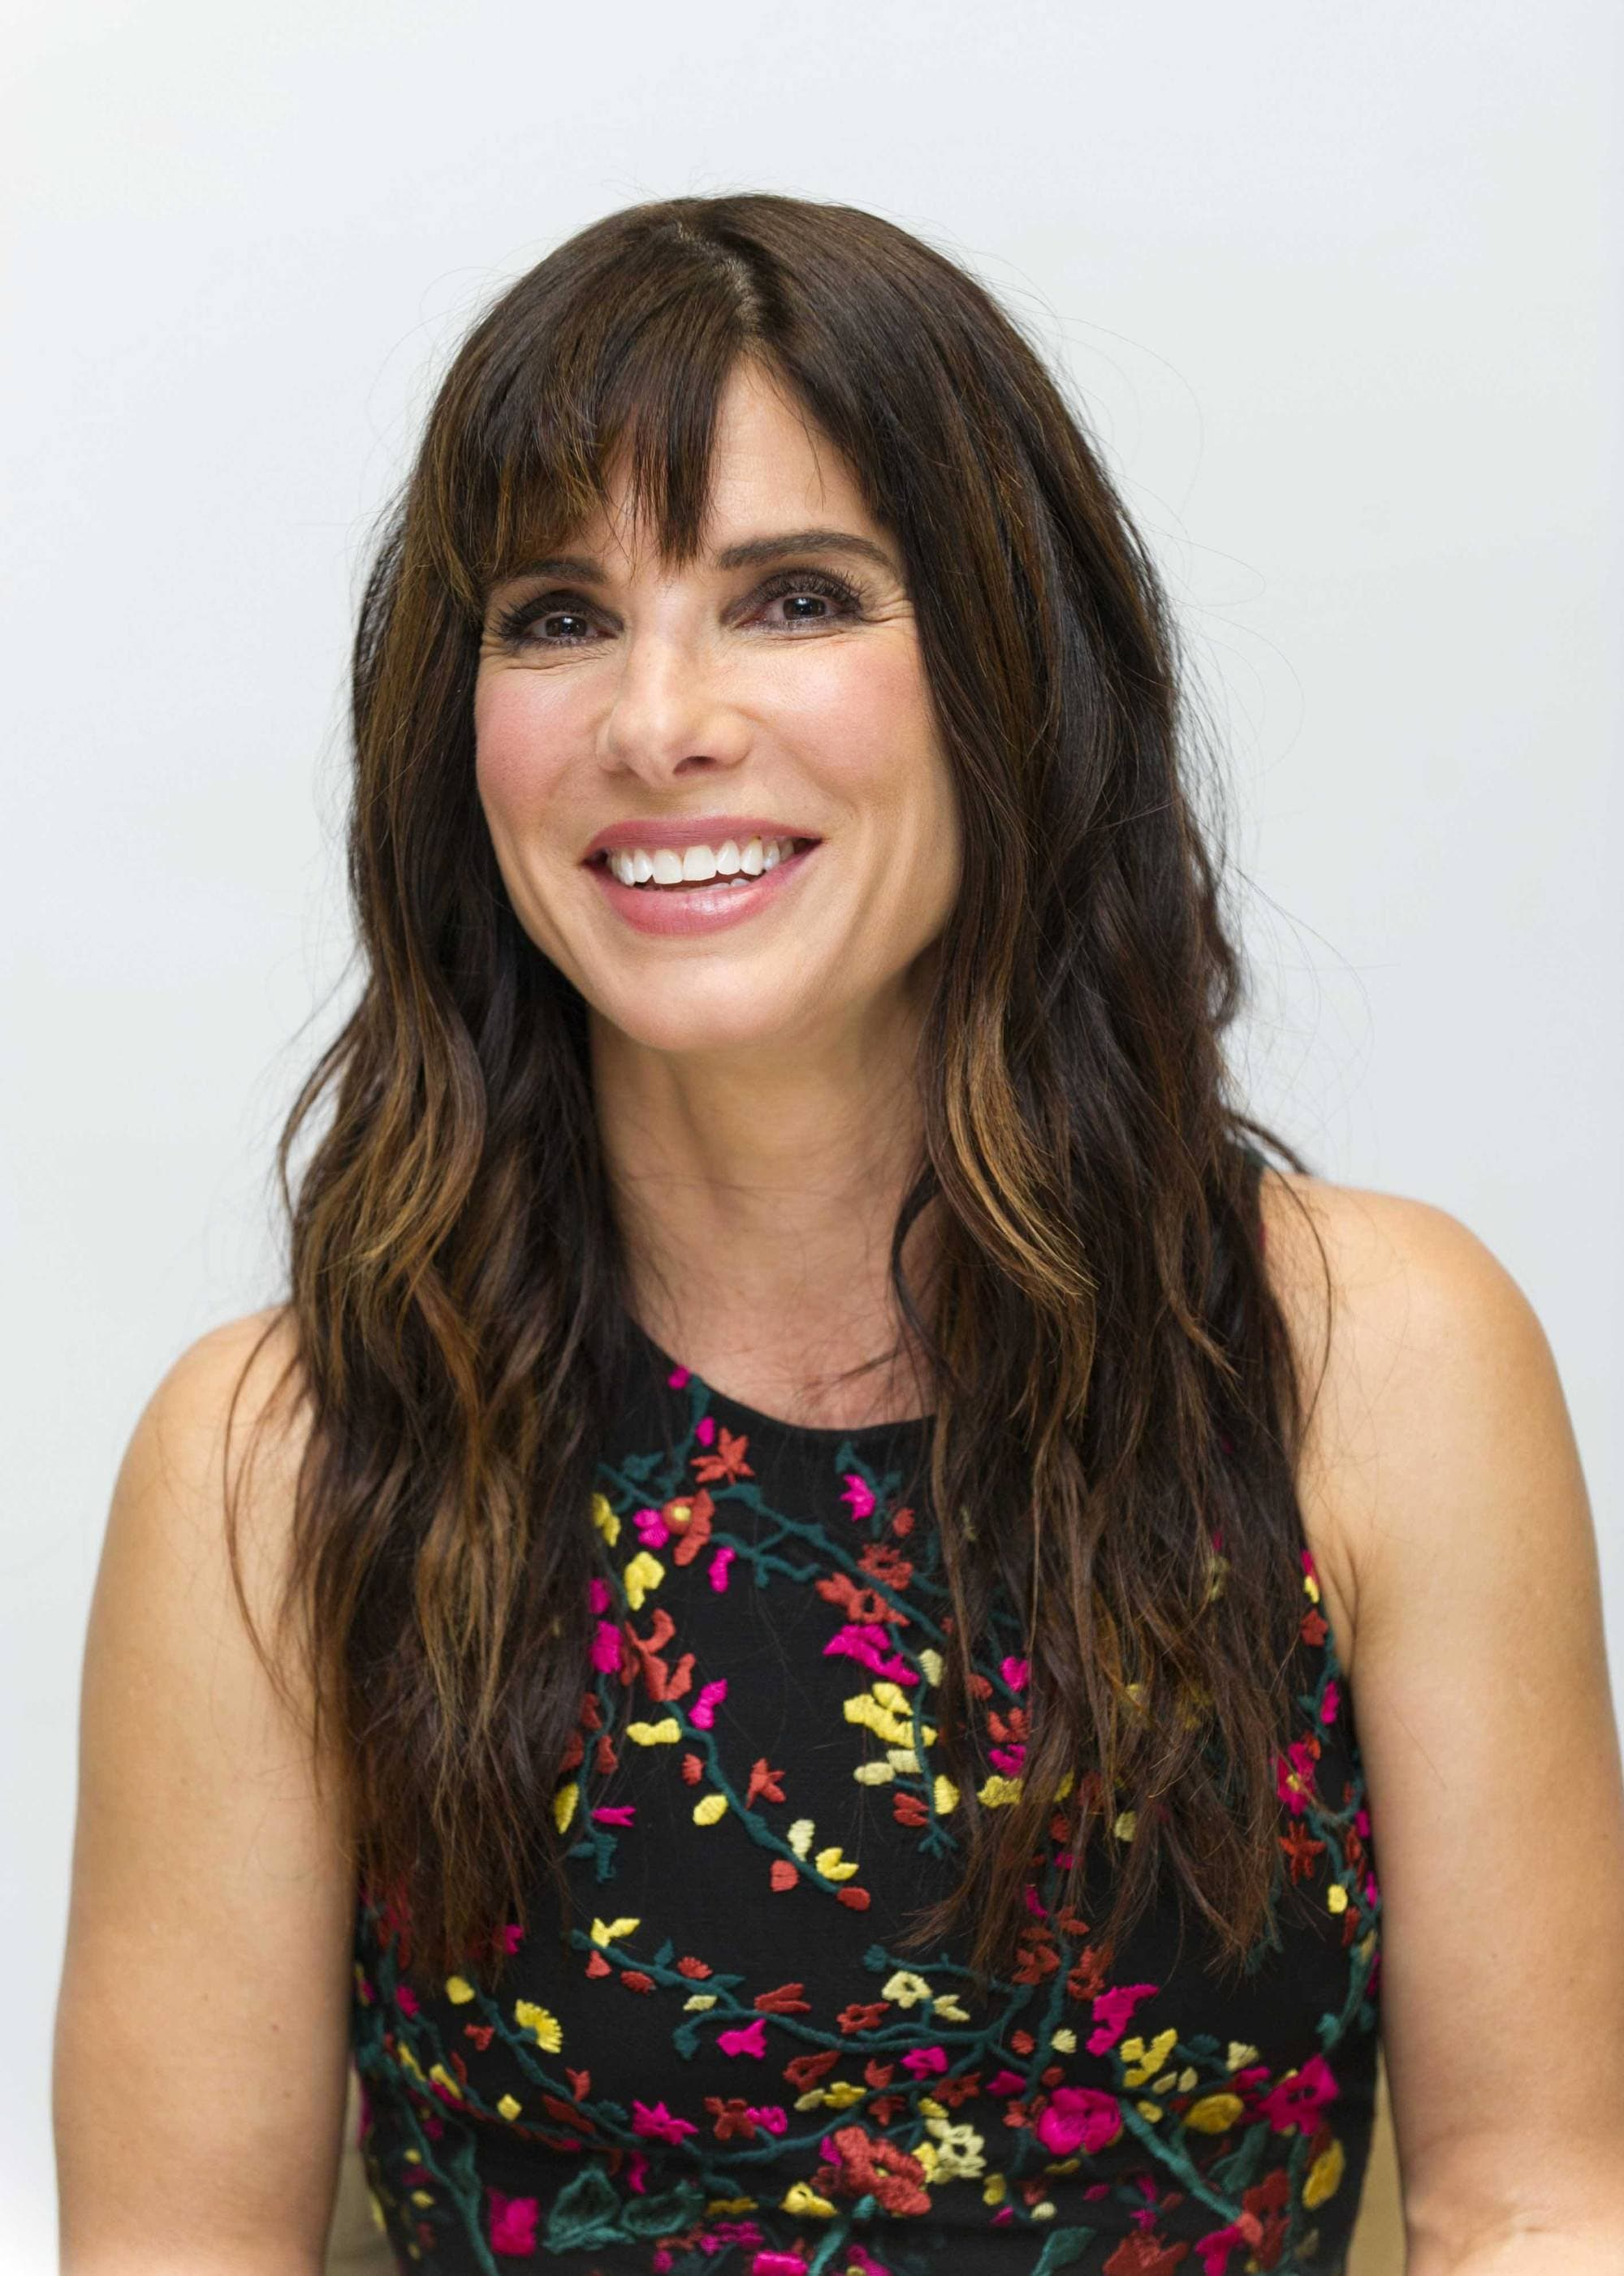 Sandra Bullock with long wavy brown hair and a fringe